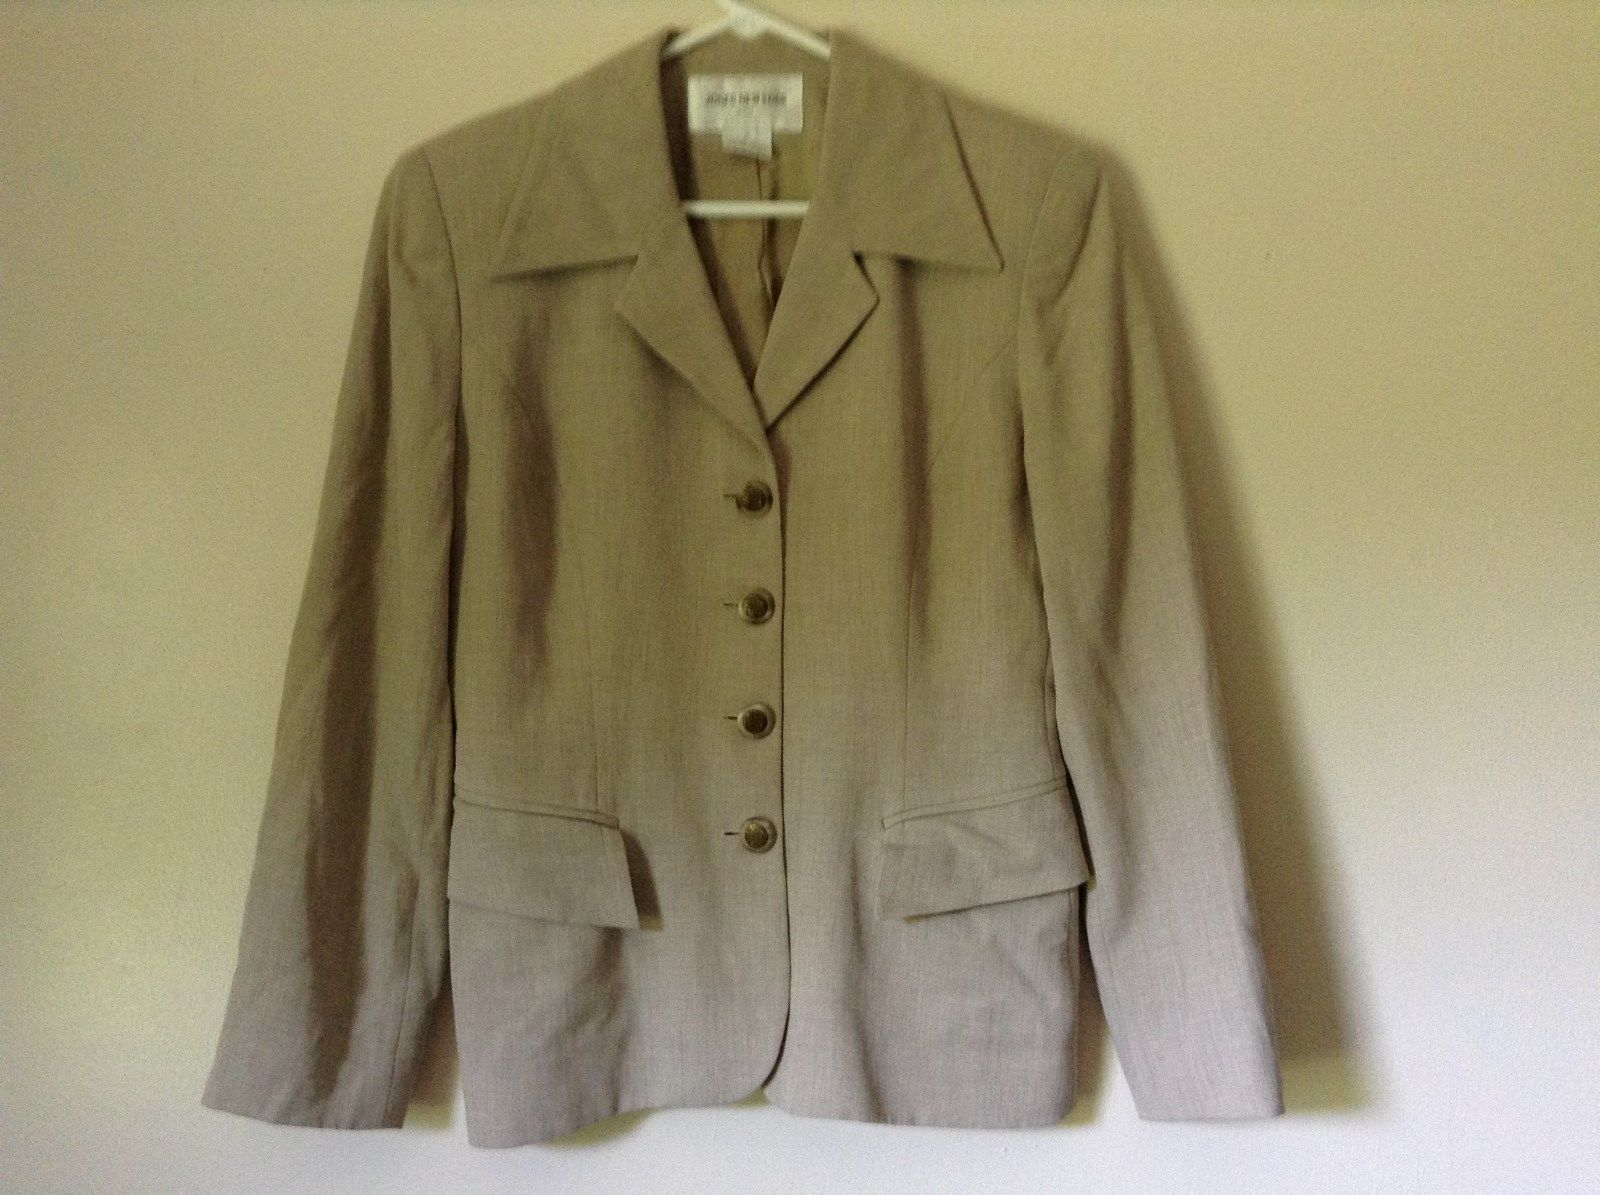 Size 4 Suit Jacket Blazer Jones New York Fancy Buttons Shoulder Pads Long Sleeve